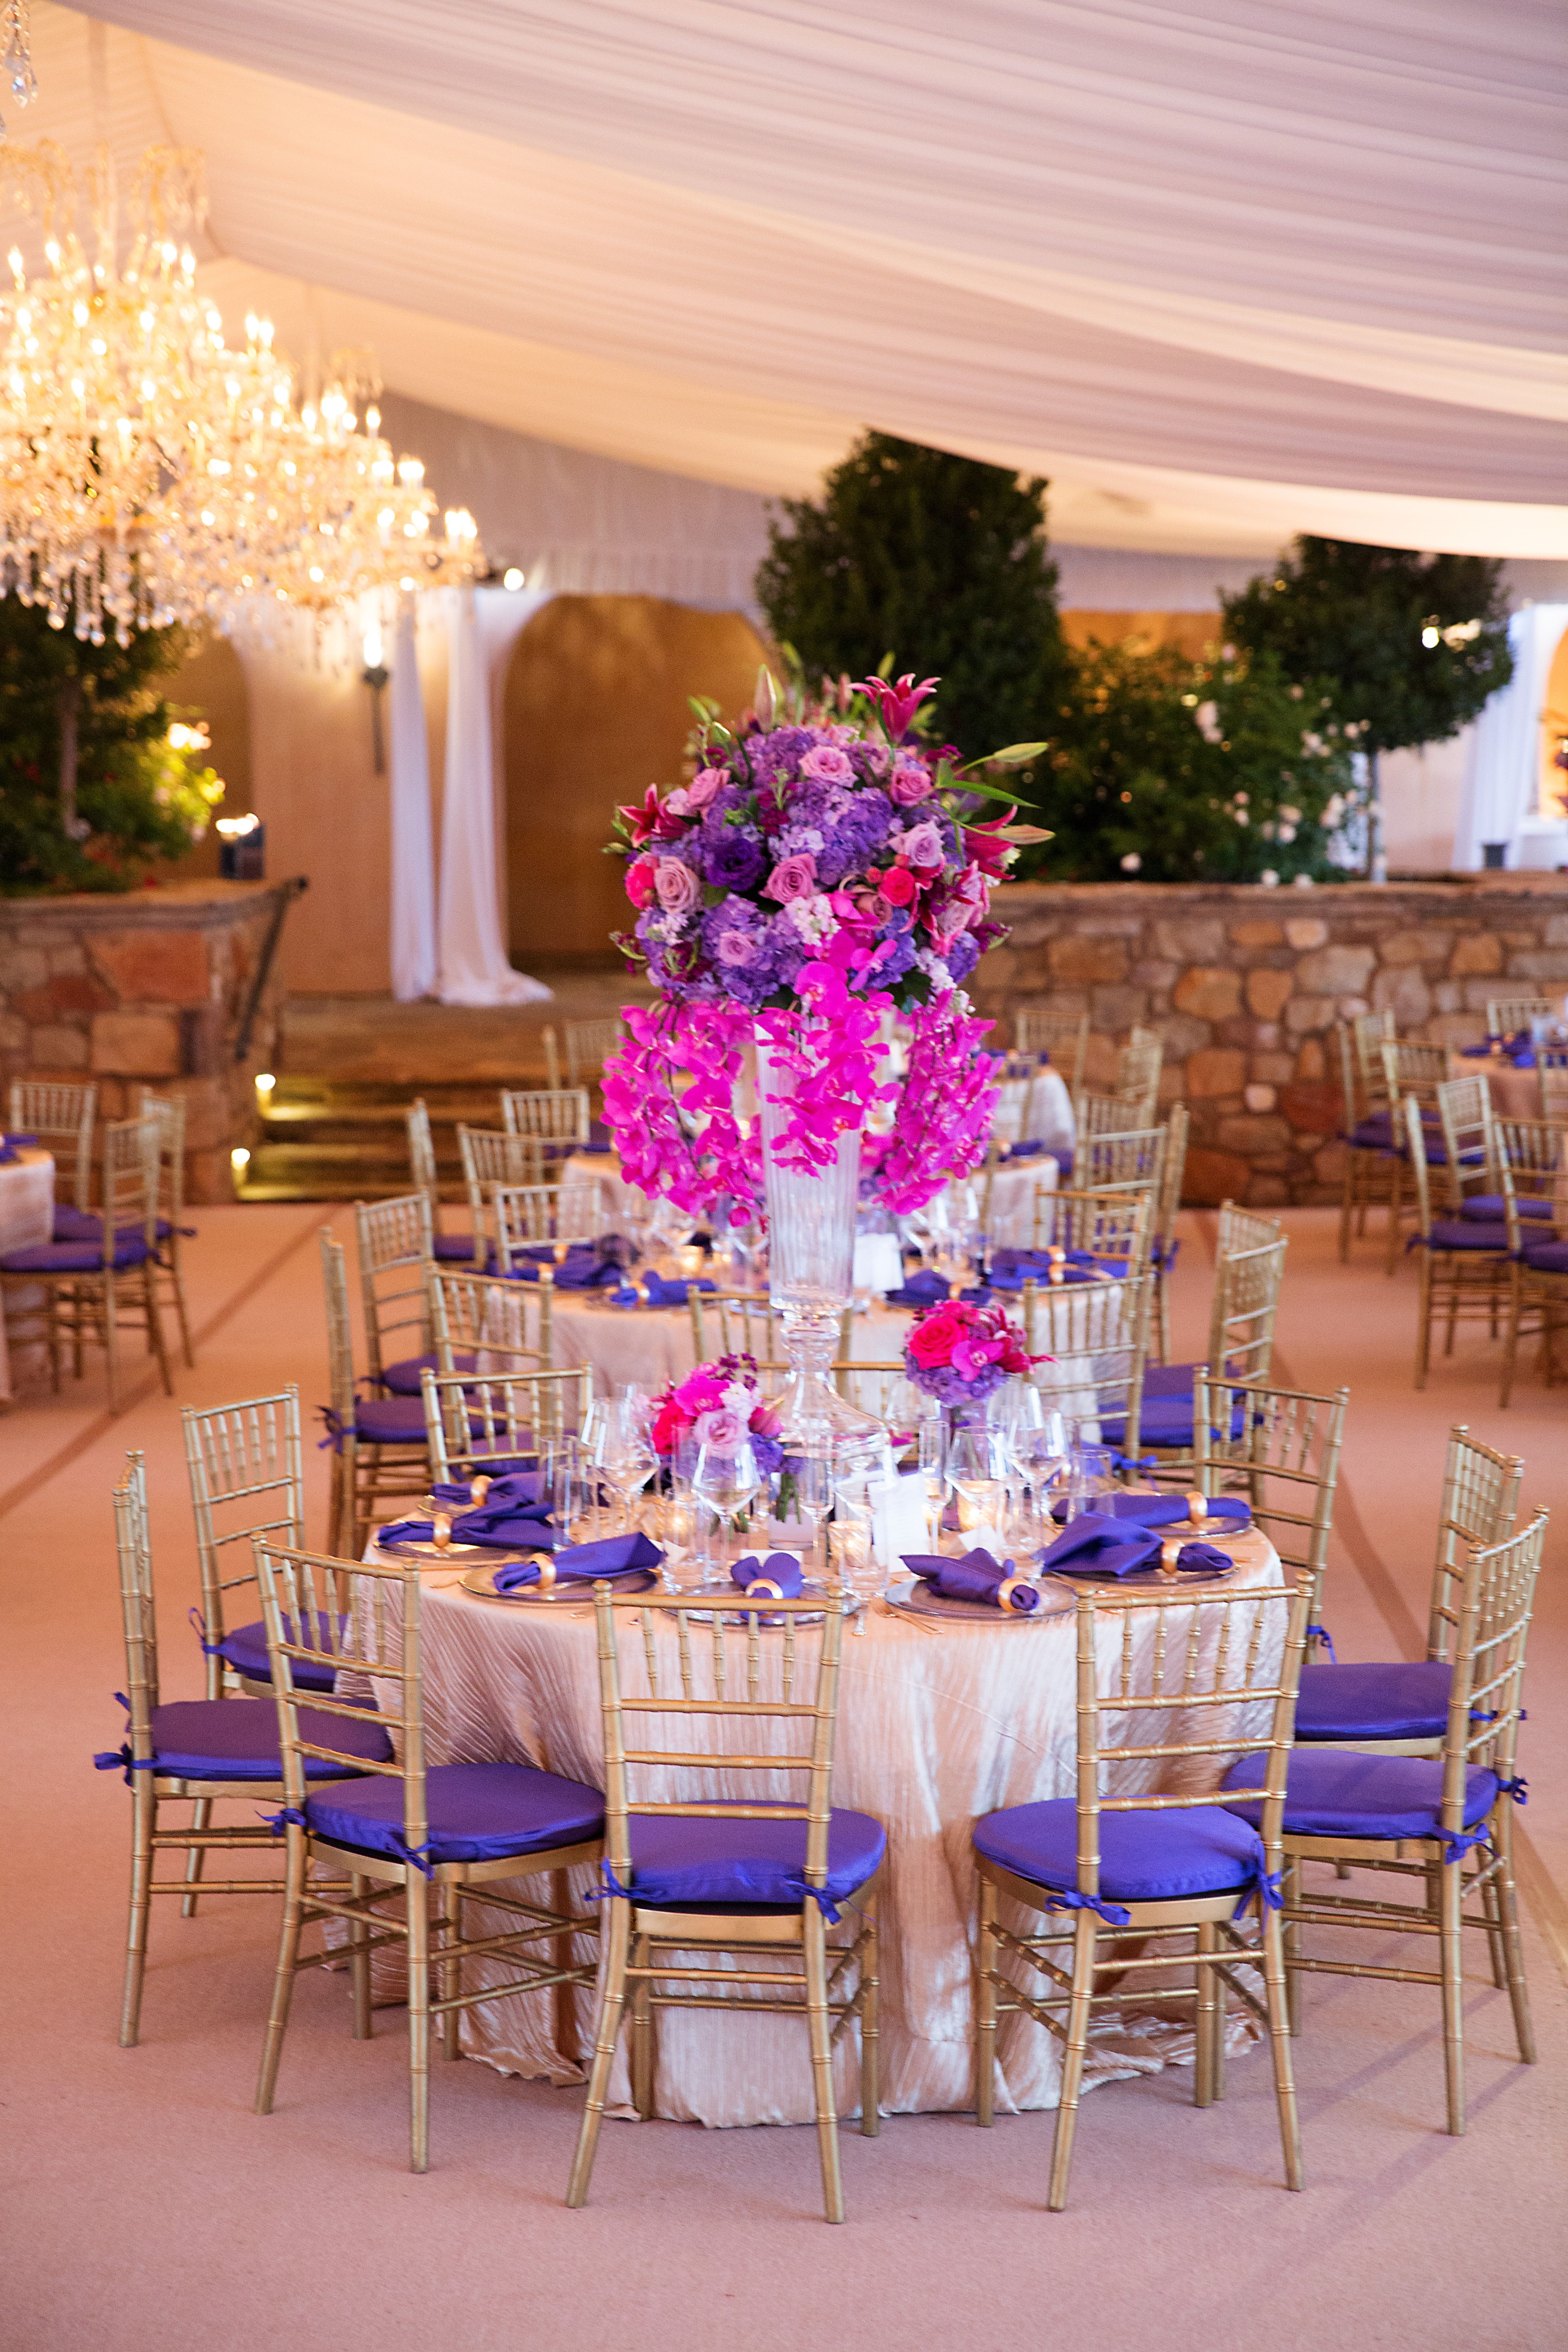 Purple, gold, and fuchsia decor everywhere the eye can see for this ...